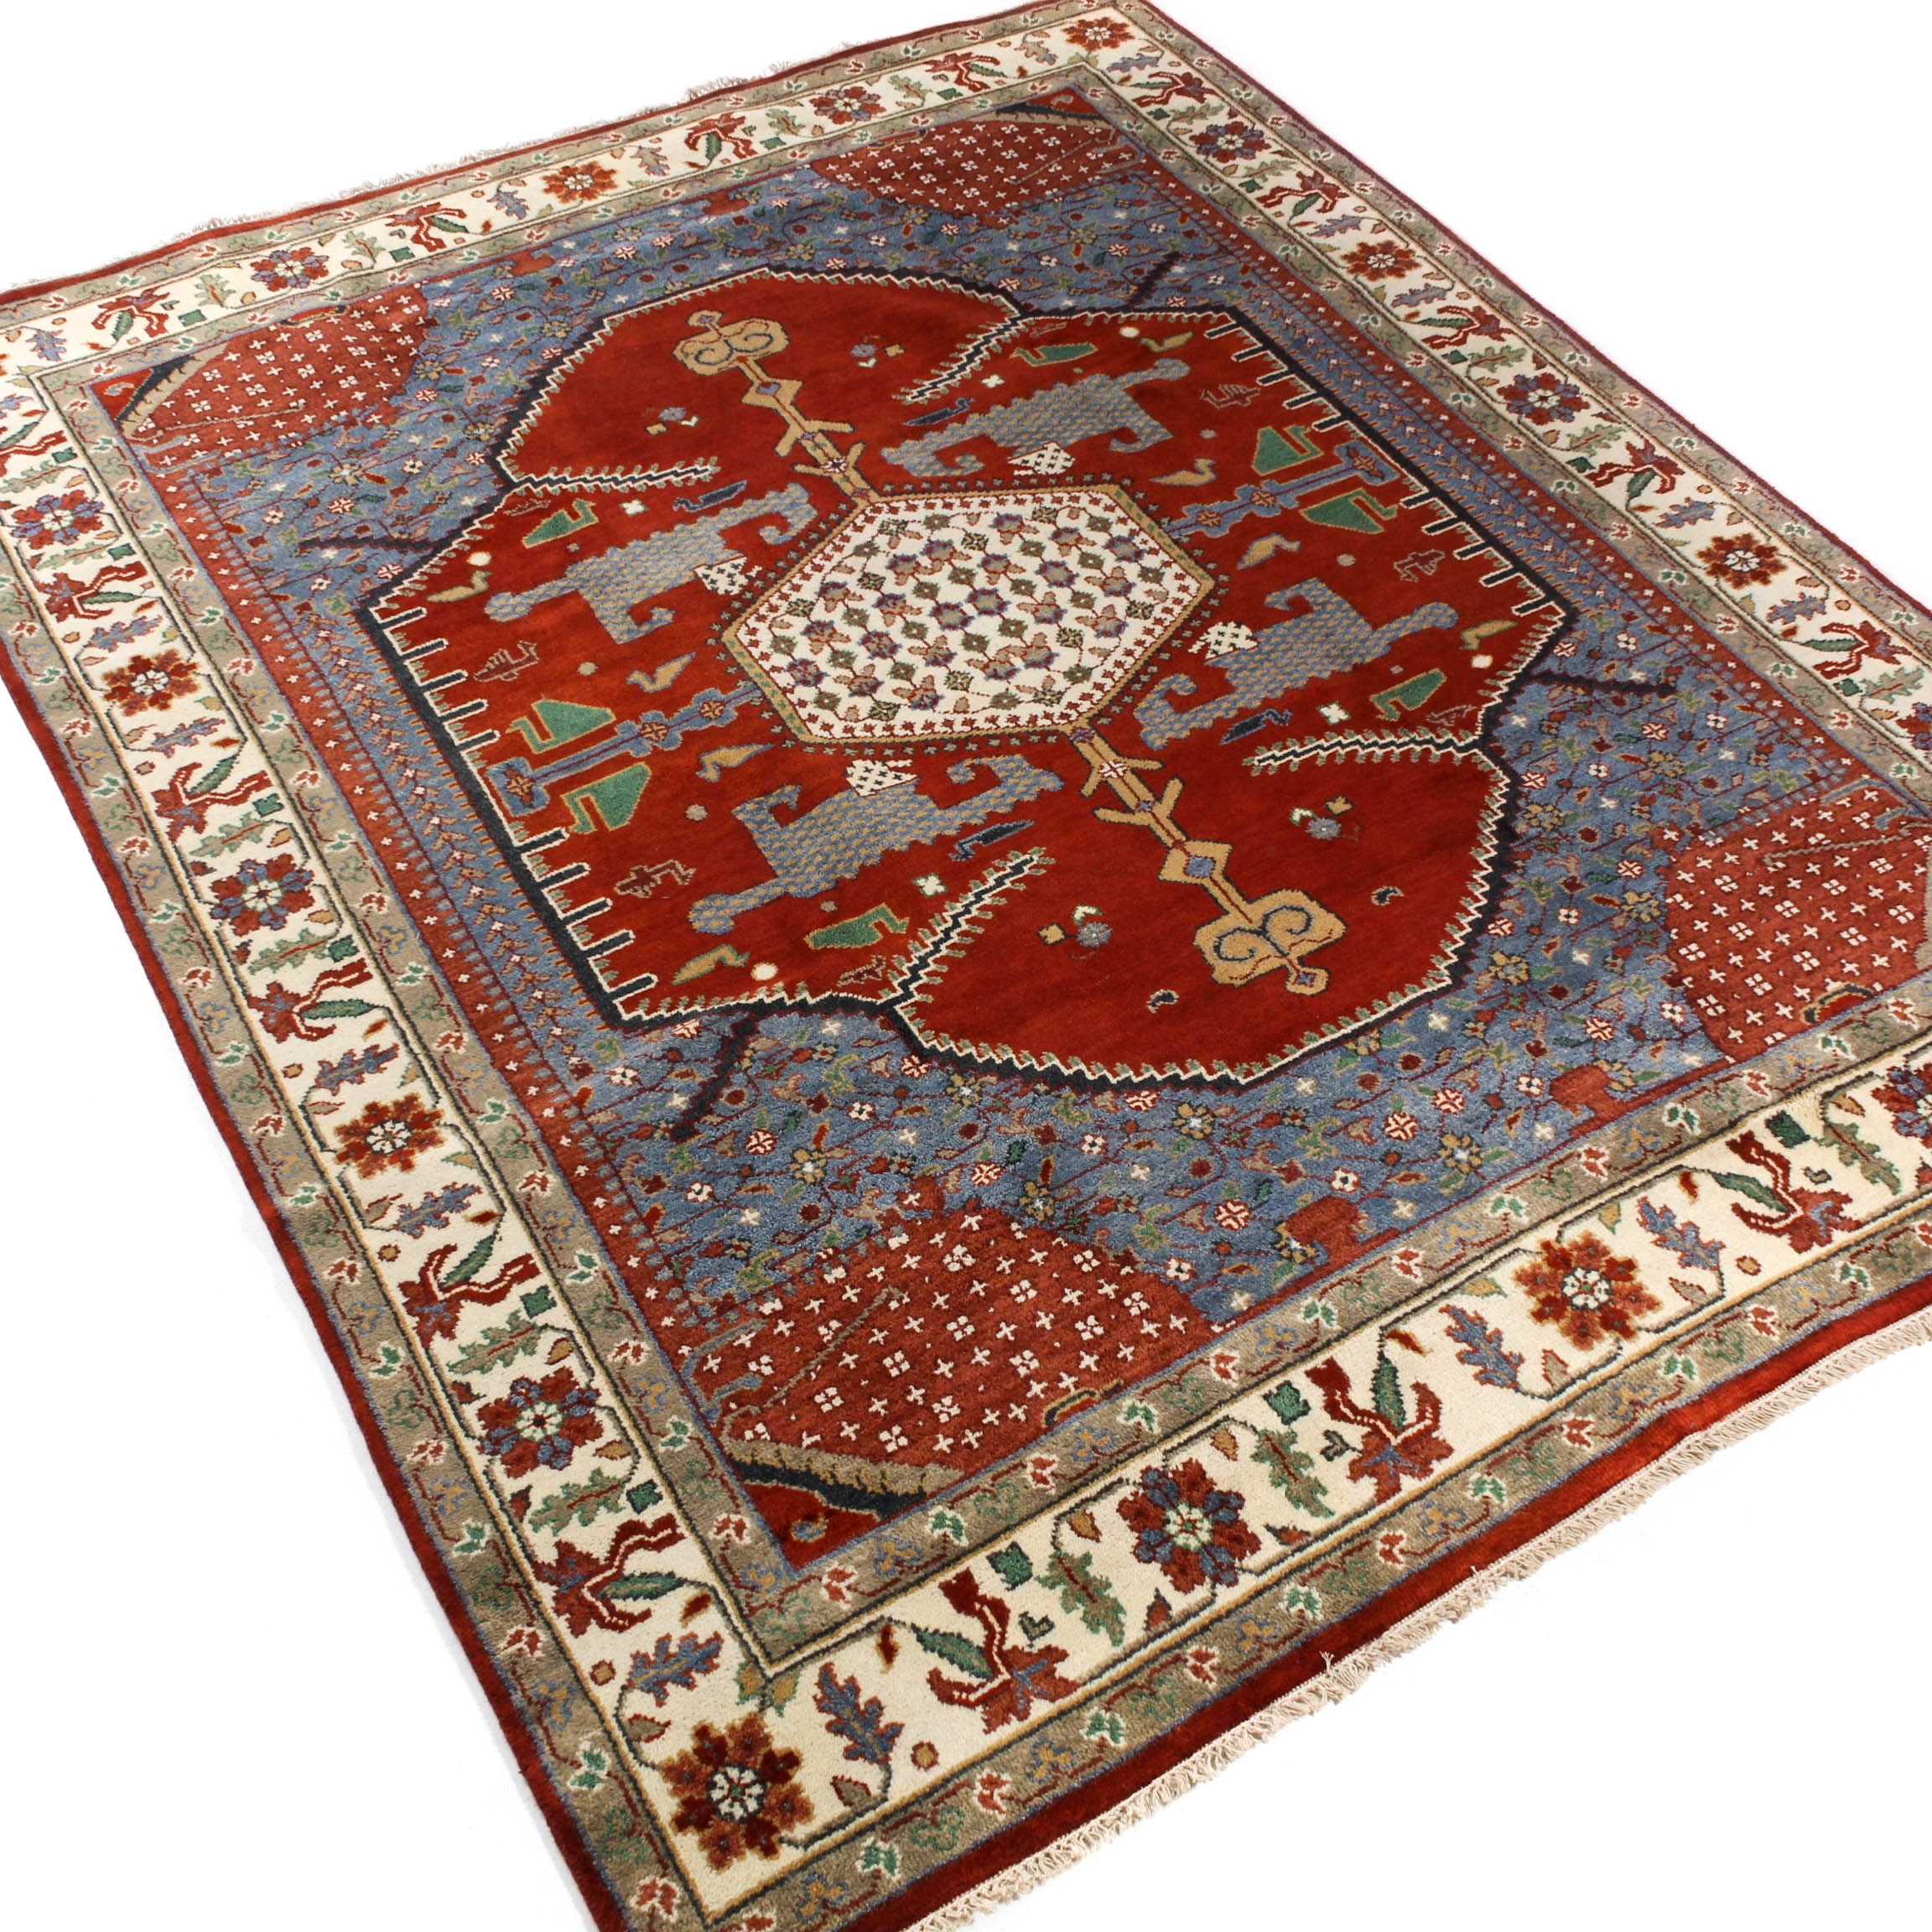 7.9' x 10' Hand-Knotted Indo-Persian Heriz Room Sized Rug